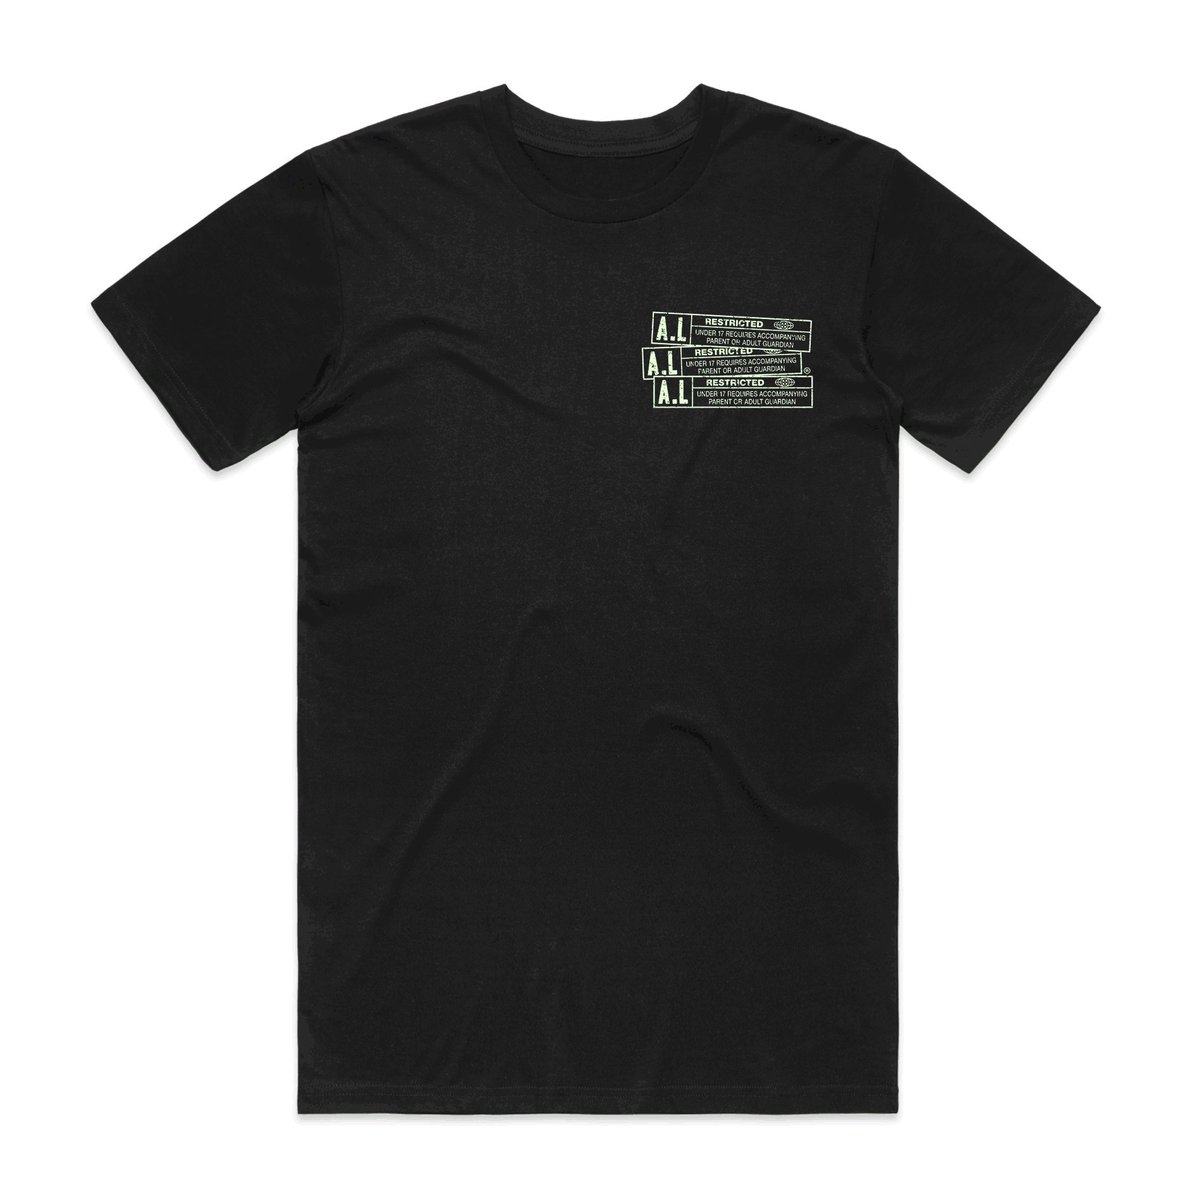 RT @AlexLahey: Holy shit my new merch glows in the fucking dark!  Get yours NOW! https://t.co/izG3s36Xfw https://t.co/iEykRnEHXS